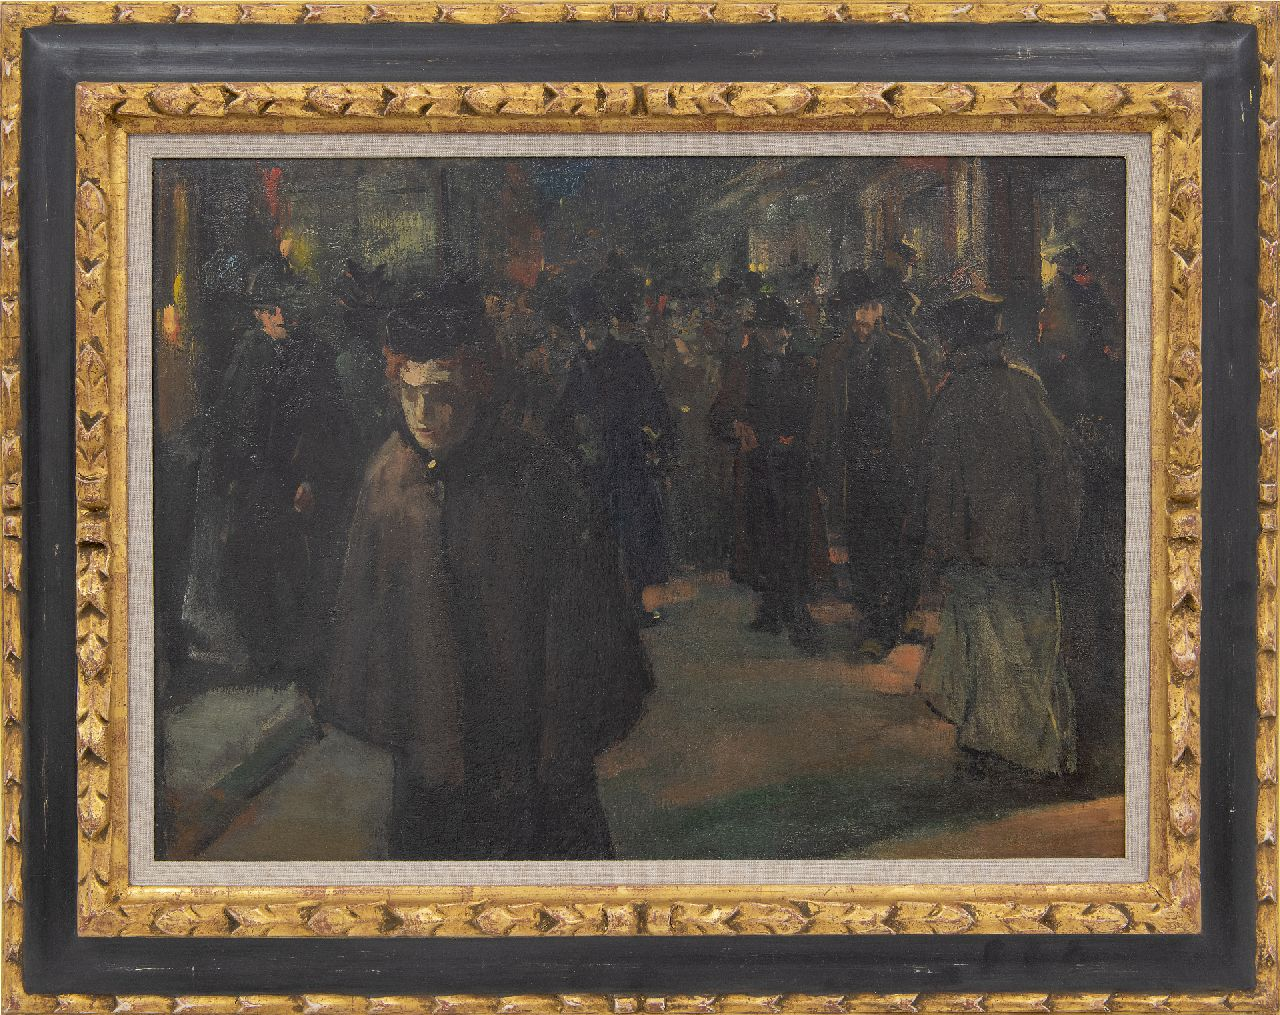 Arntzenius P.F.N.J.  | Pieter Florentius Nicolaas Jacobus 'Floris' Arntzenius | Paintings offered for sale | Crowded shopping street by night, oil on canvas 36.8 x 51.0 cm